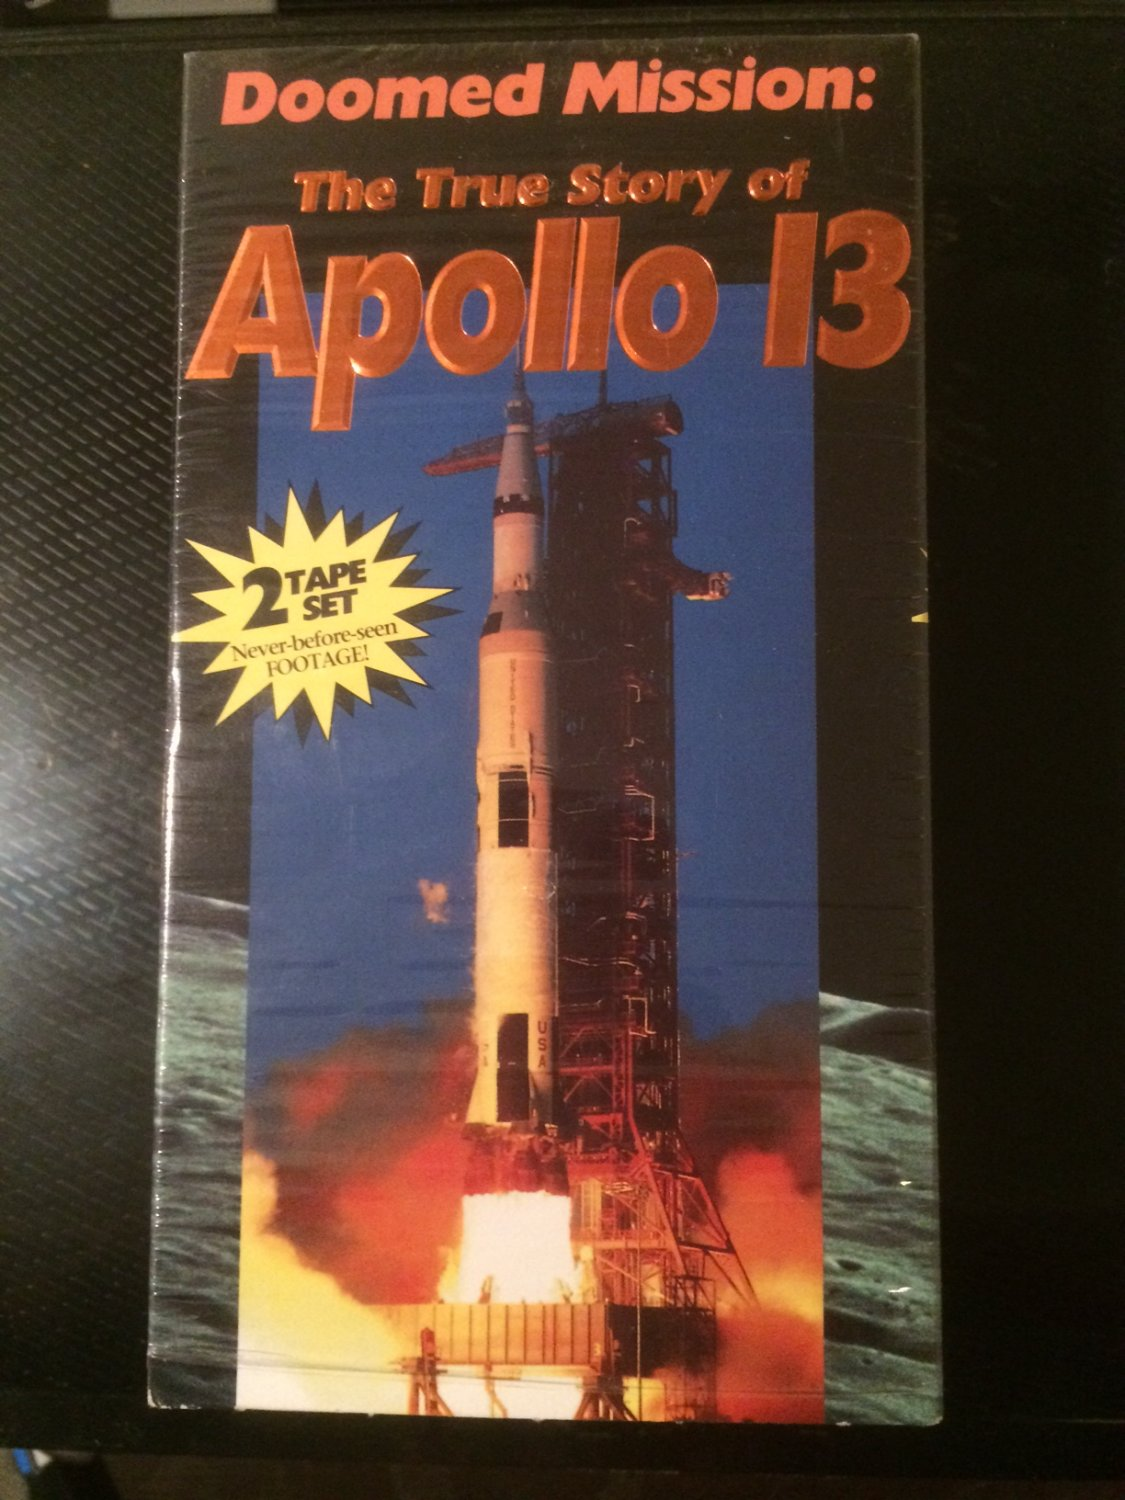 VHS - Doomed Mission: The True Story of Apollo 13 (2 Tapes) - Used - NOT ON DVD